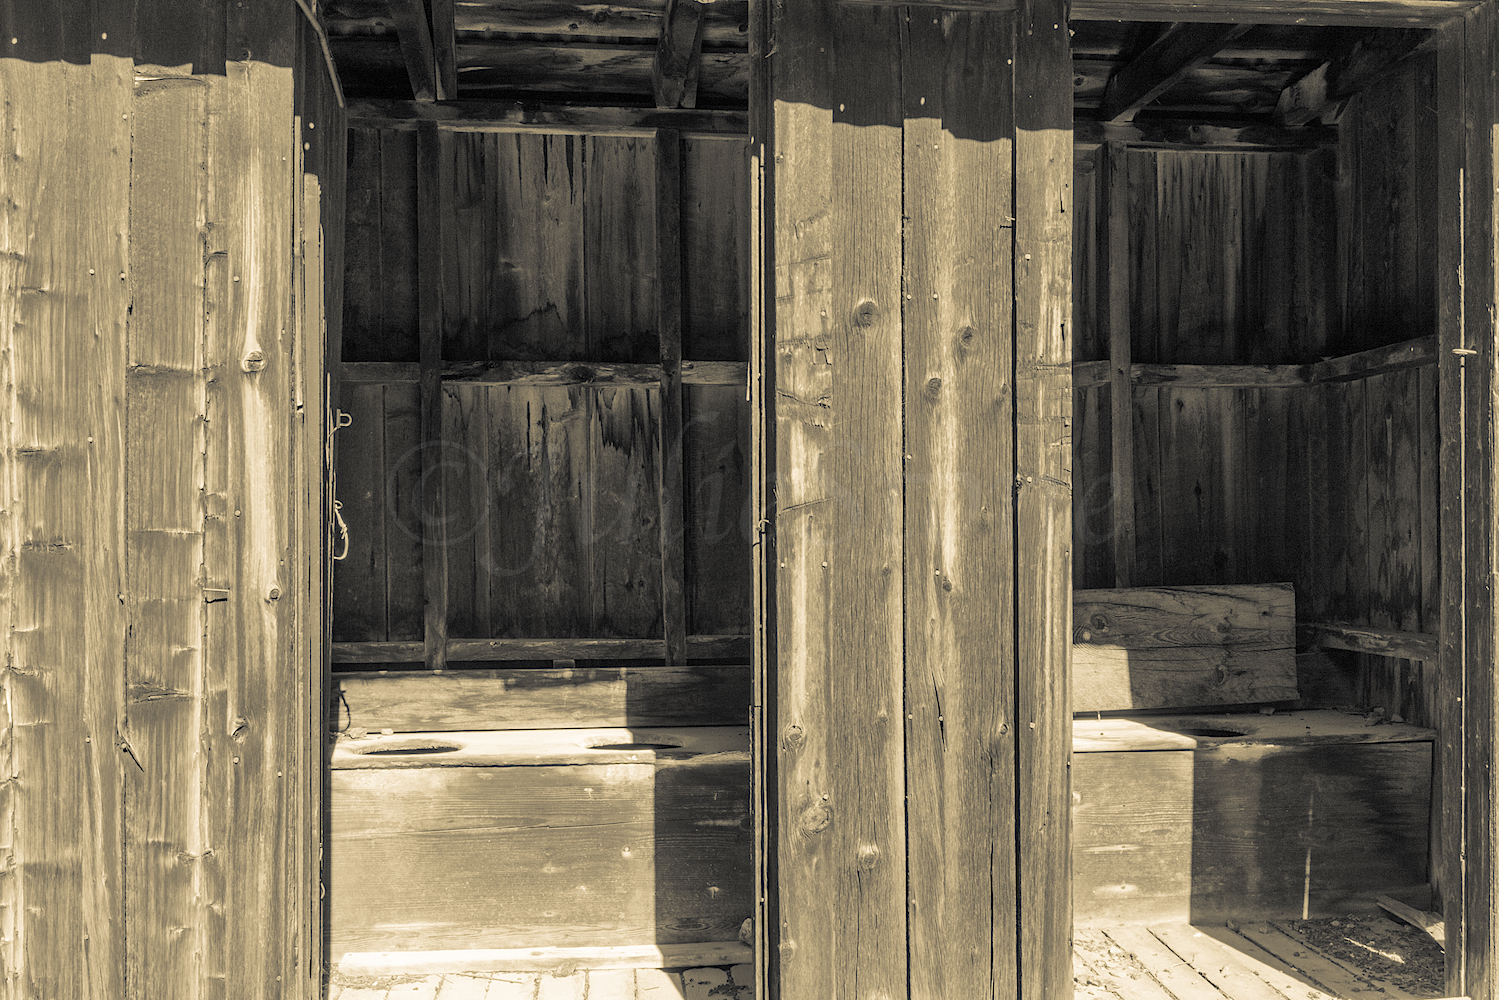 Outhouse at Henson Ghost Town, Image # 5113